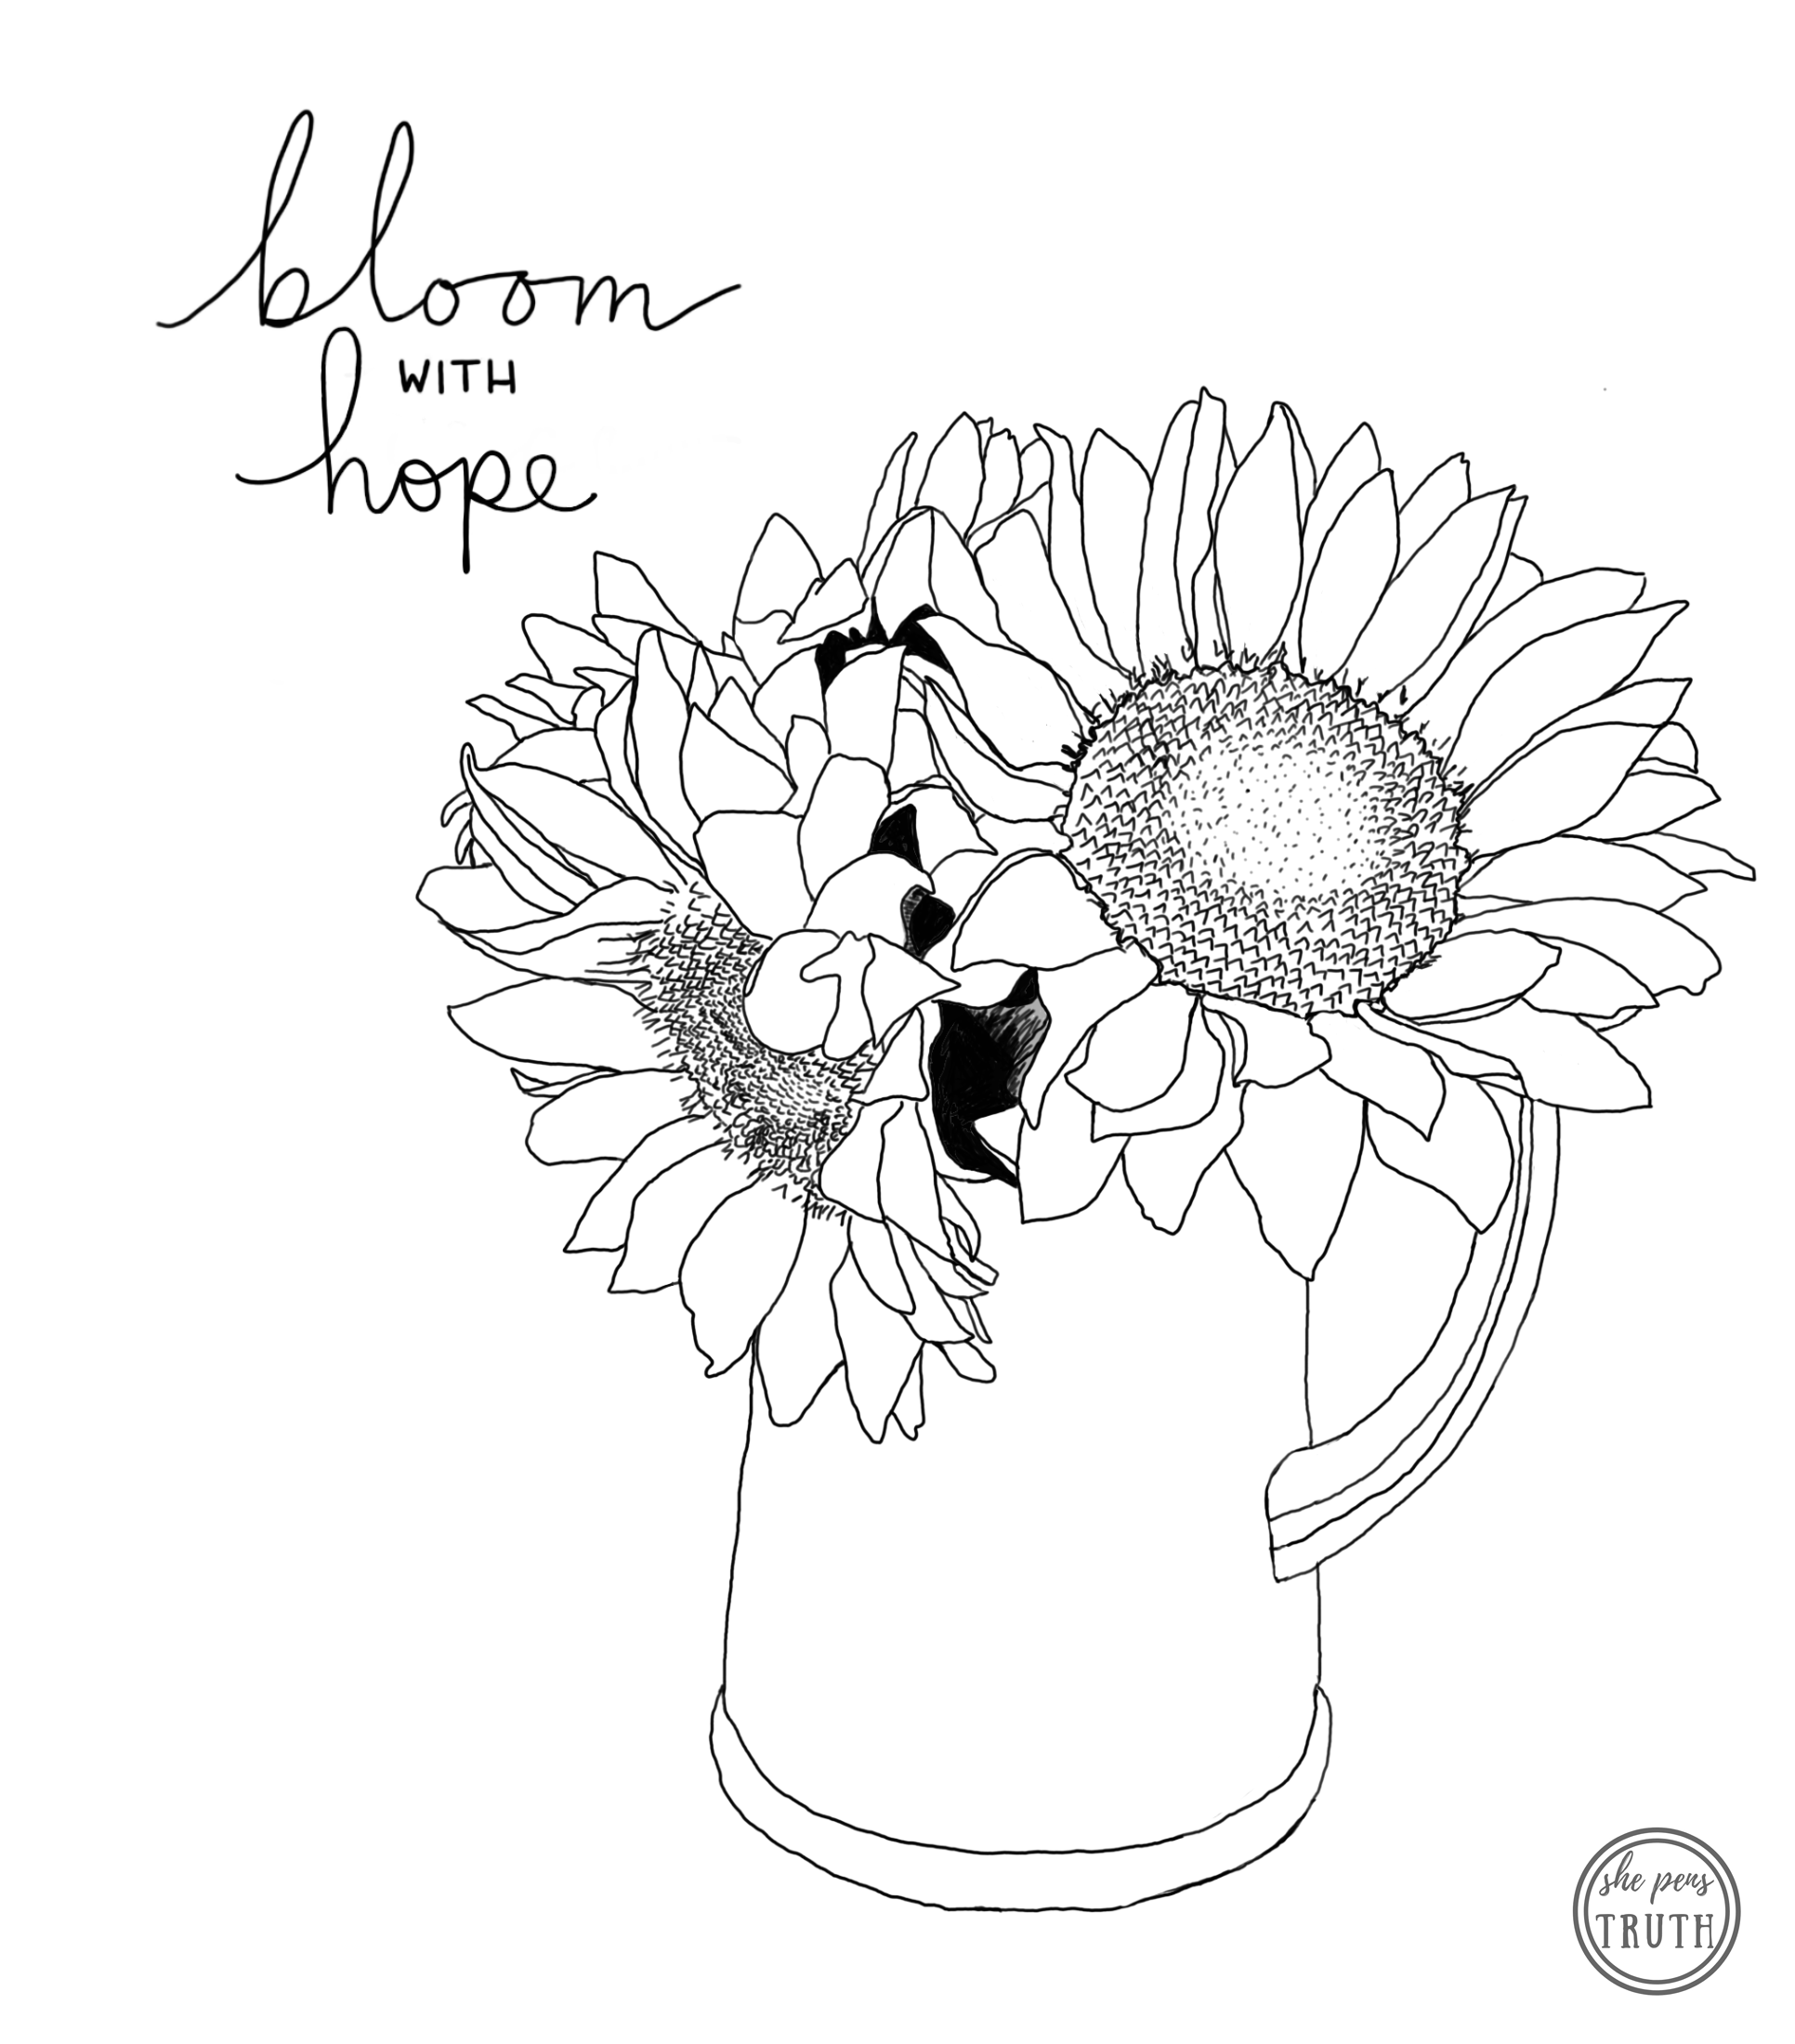 She Pens Truth Coloring Page, Bloom with Hope, Sunflower Bouquet